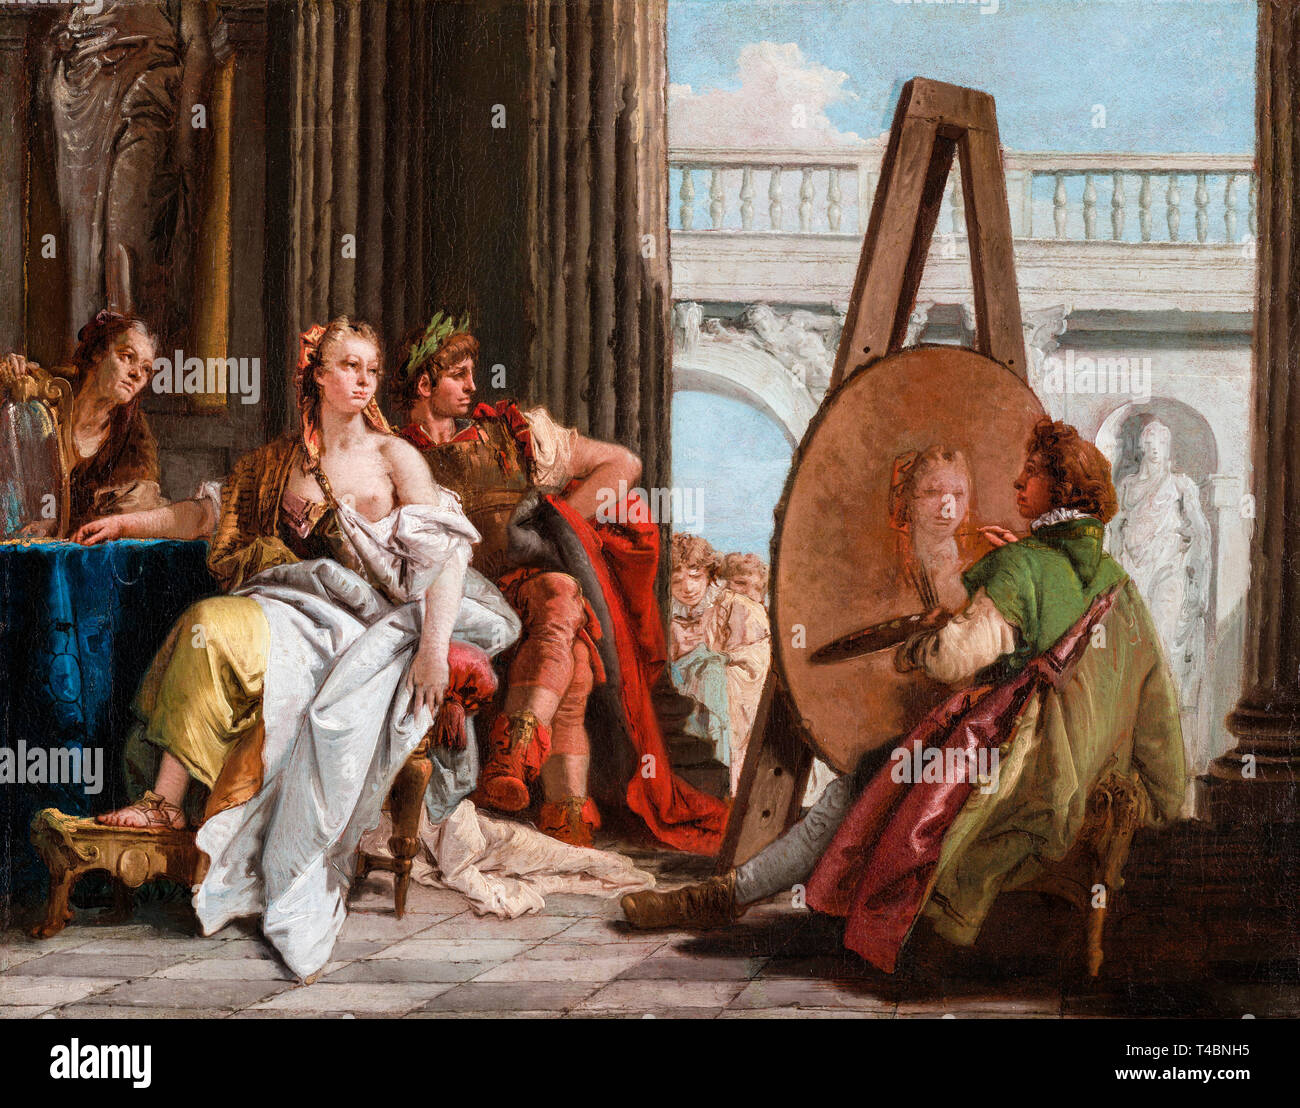 Giovanni Battista Tiepolo, Alexander the Great and Campaspe in the Studio of Apelles, painting c. 1740 Stock Photo